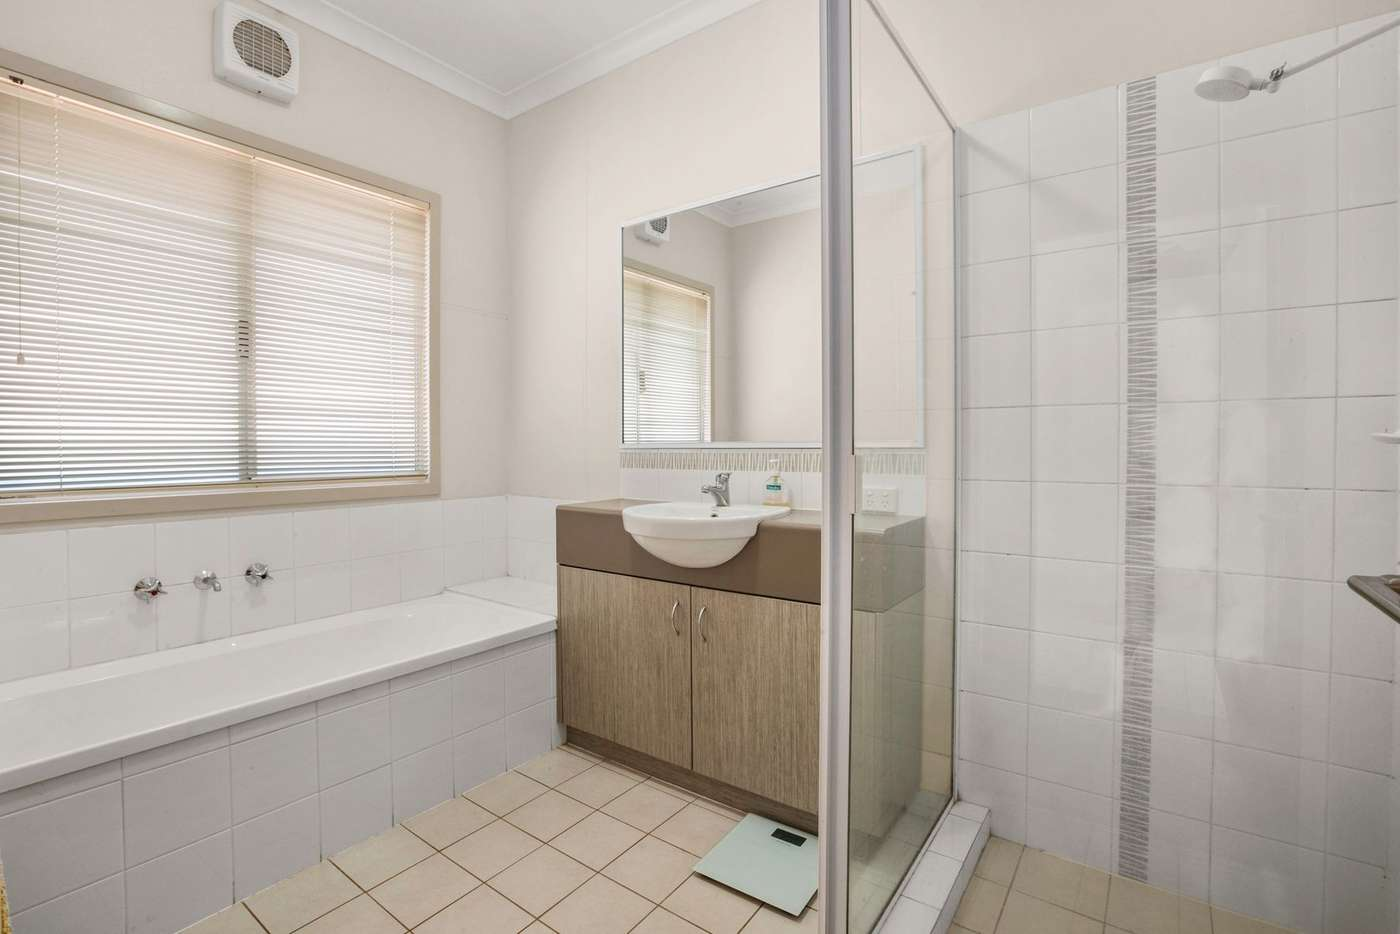 Seventh view of Homely house listing, 10 Bardurra Street, Baynton WA 6714